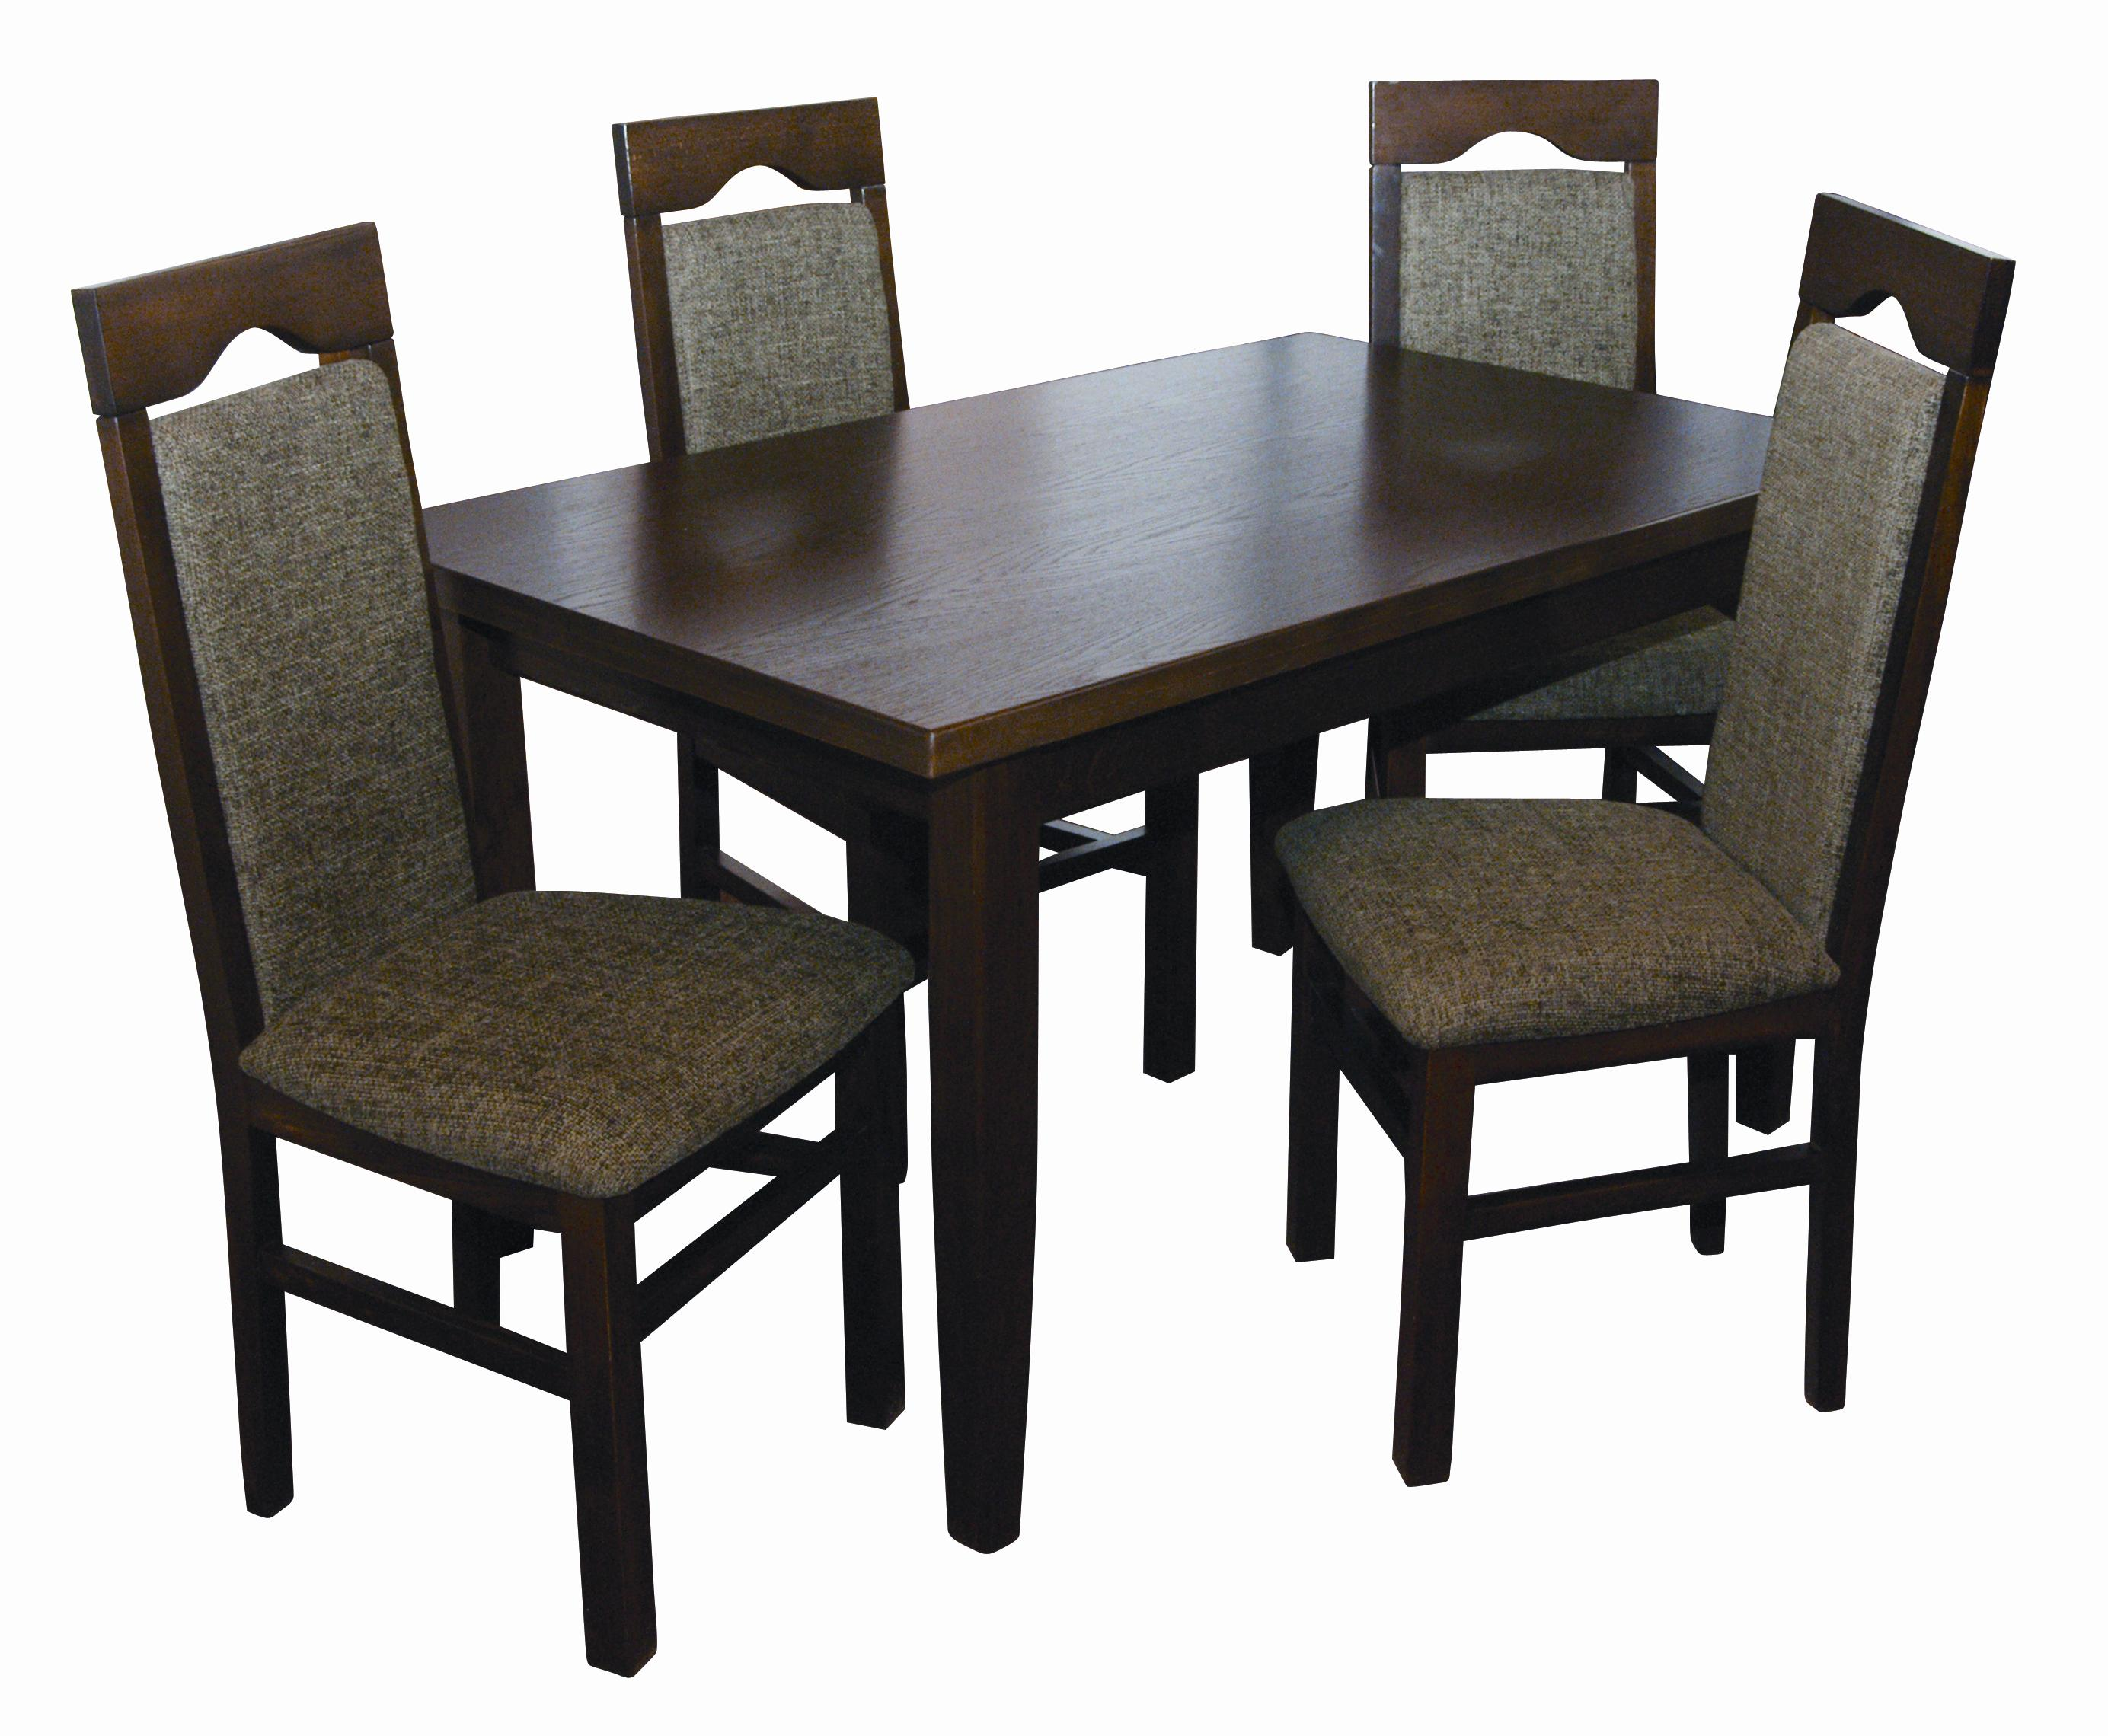 Restaurant Chairs Design 0 0 2000 0 Pieces